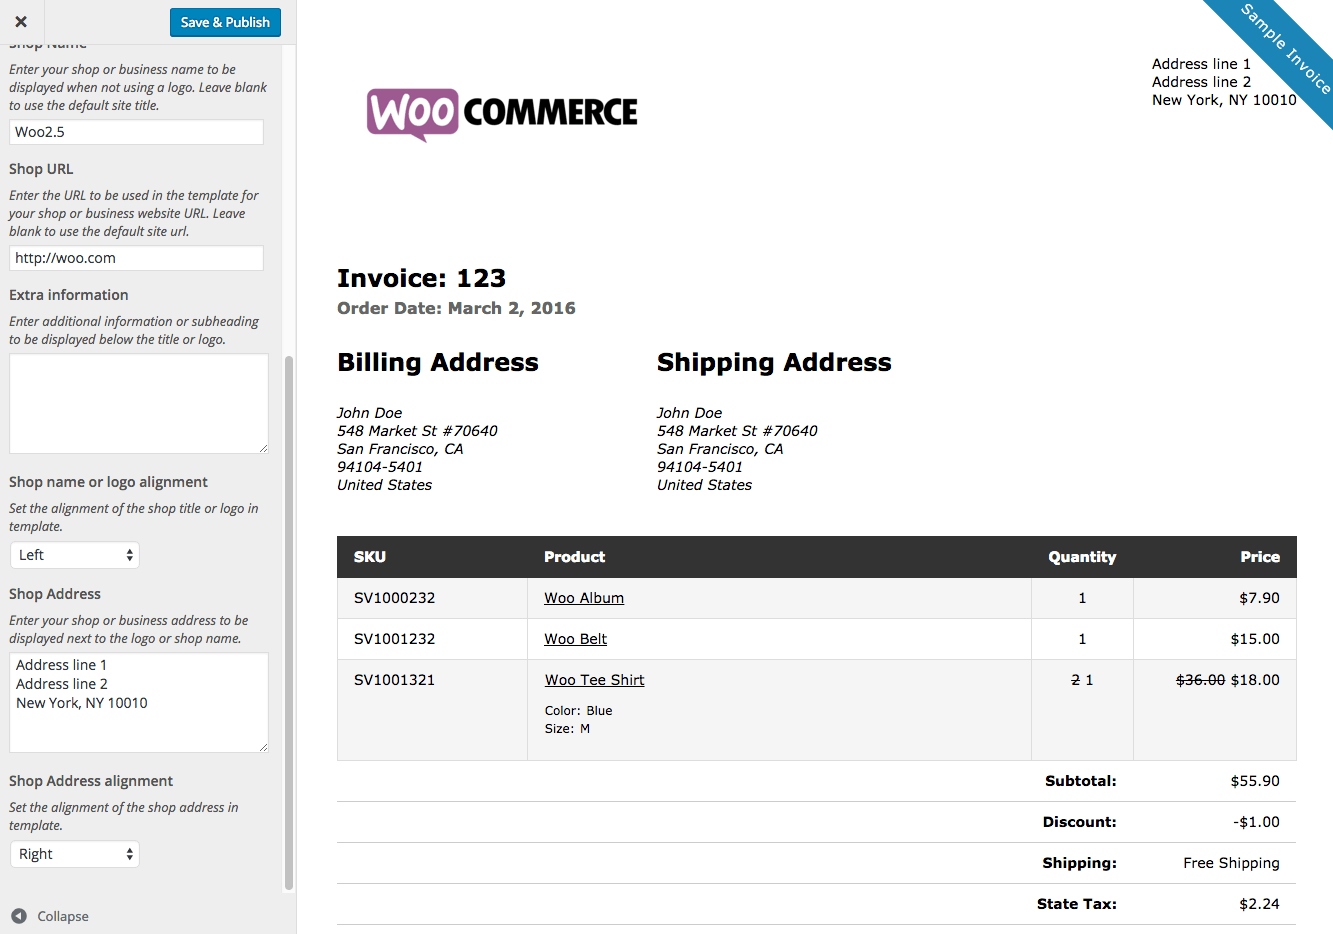 Soulfulpowerus  Surprising Woocommerce Print Invoices Amp Packing Lists  Woocommerce Docs With Great Woocommerce Print Invoices  Packing Lists Customizer With Nice Sample Consulting Invoice Also Invoice Booklet Printing In Addition Prepayment Invoice And Free Open Office Invoice Template As Well As Send Invoice Through Paypal Additionally Customer Database And Invoice Software From Docswoocommercecom With Soulfulpowerus  Great Woocommerce Print Invoices Amp Packing Lists  Woocommerce Docs With Nice Woocommerce Print Invoices  Packing Lists Customizer And Surprising Sample Consulting Invoice Also Invoice Booklet Printing In Addition Prepayment Invoice From Docswoocommercecom